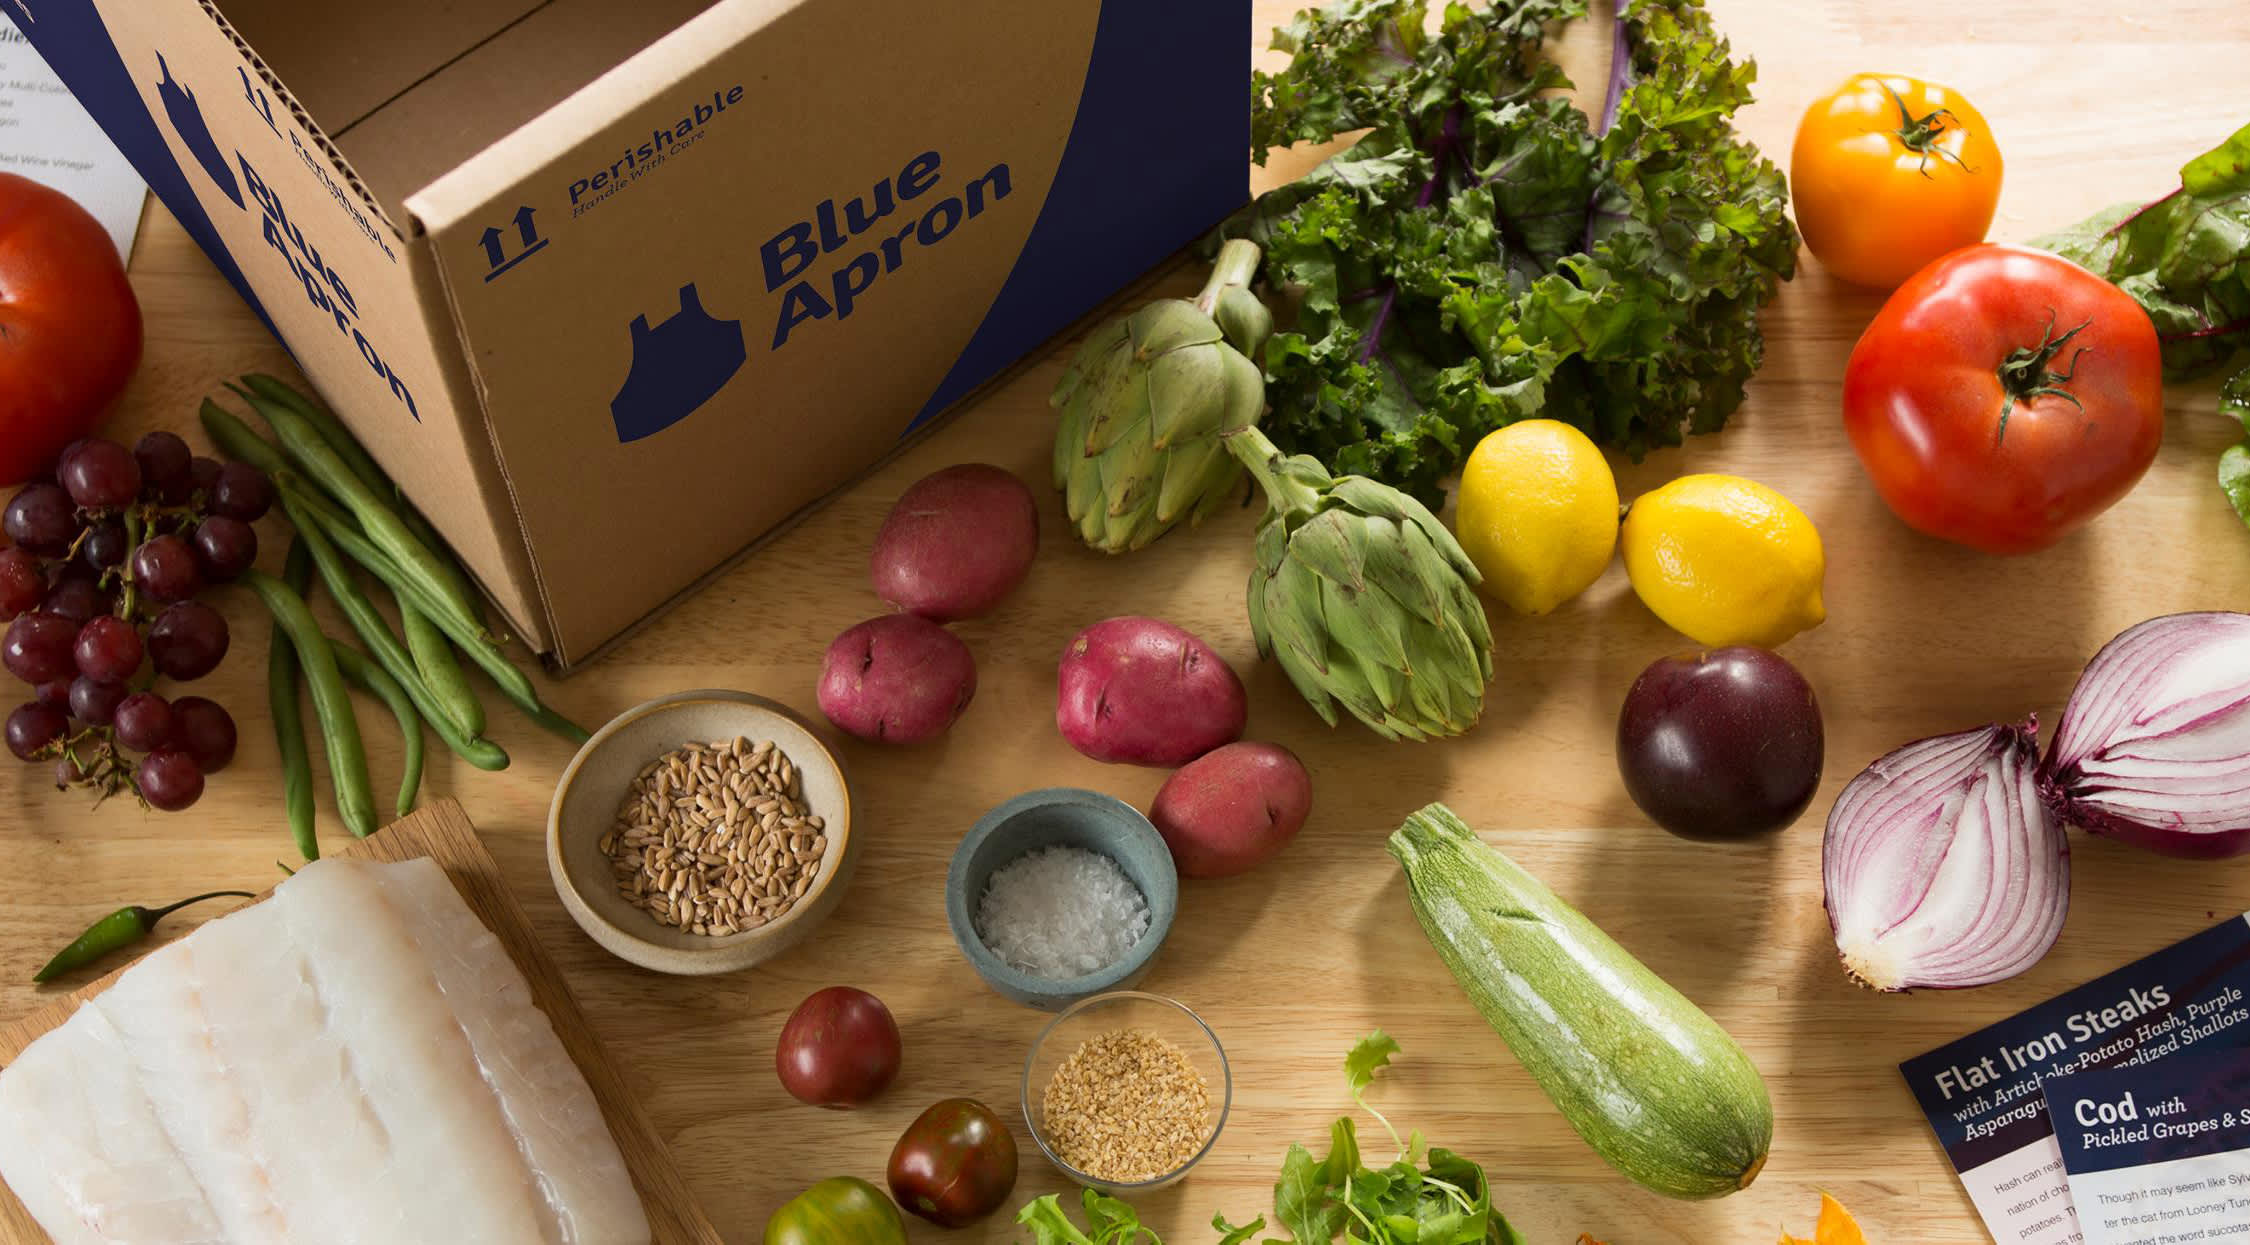 Blue apron locations